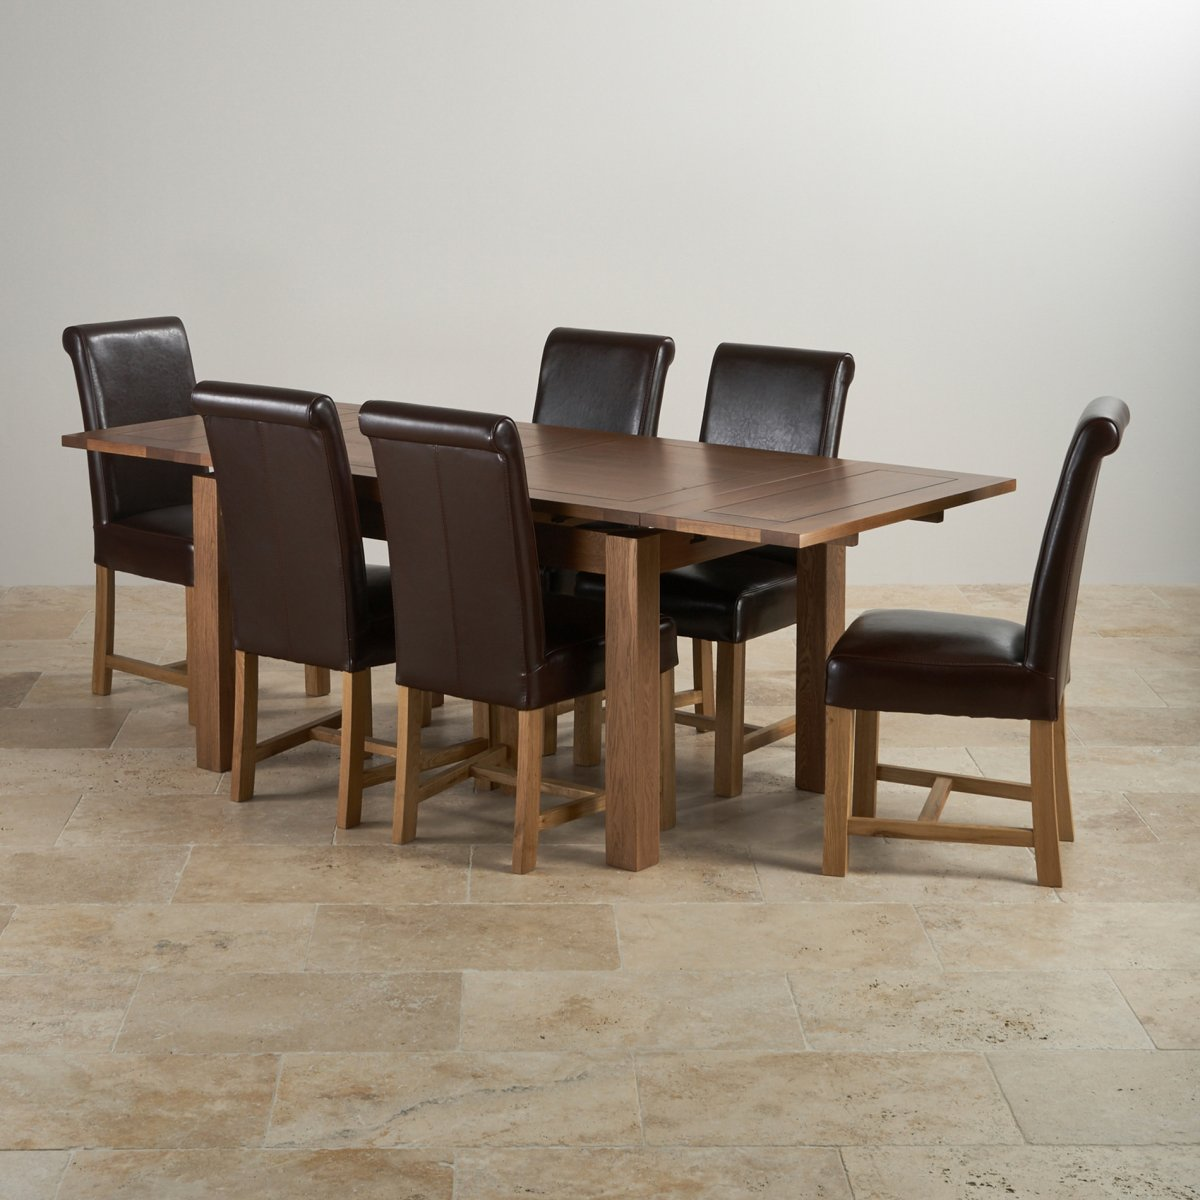 oak dining set 6 chairs chaise for living room rustic extending 4ft 7 quot table 43 leather